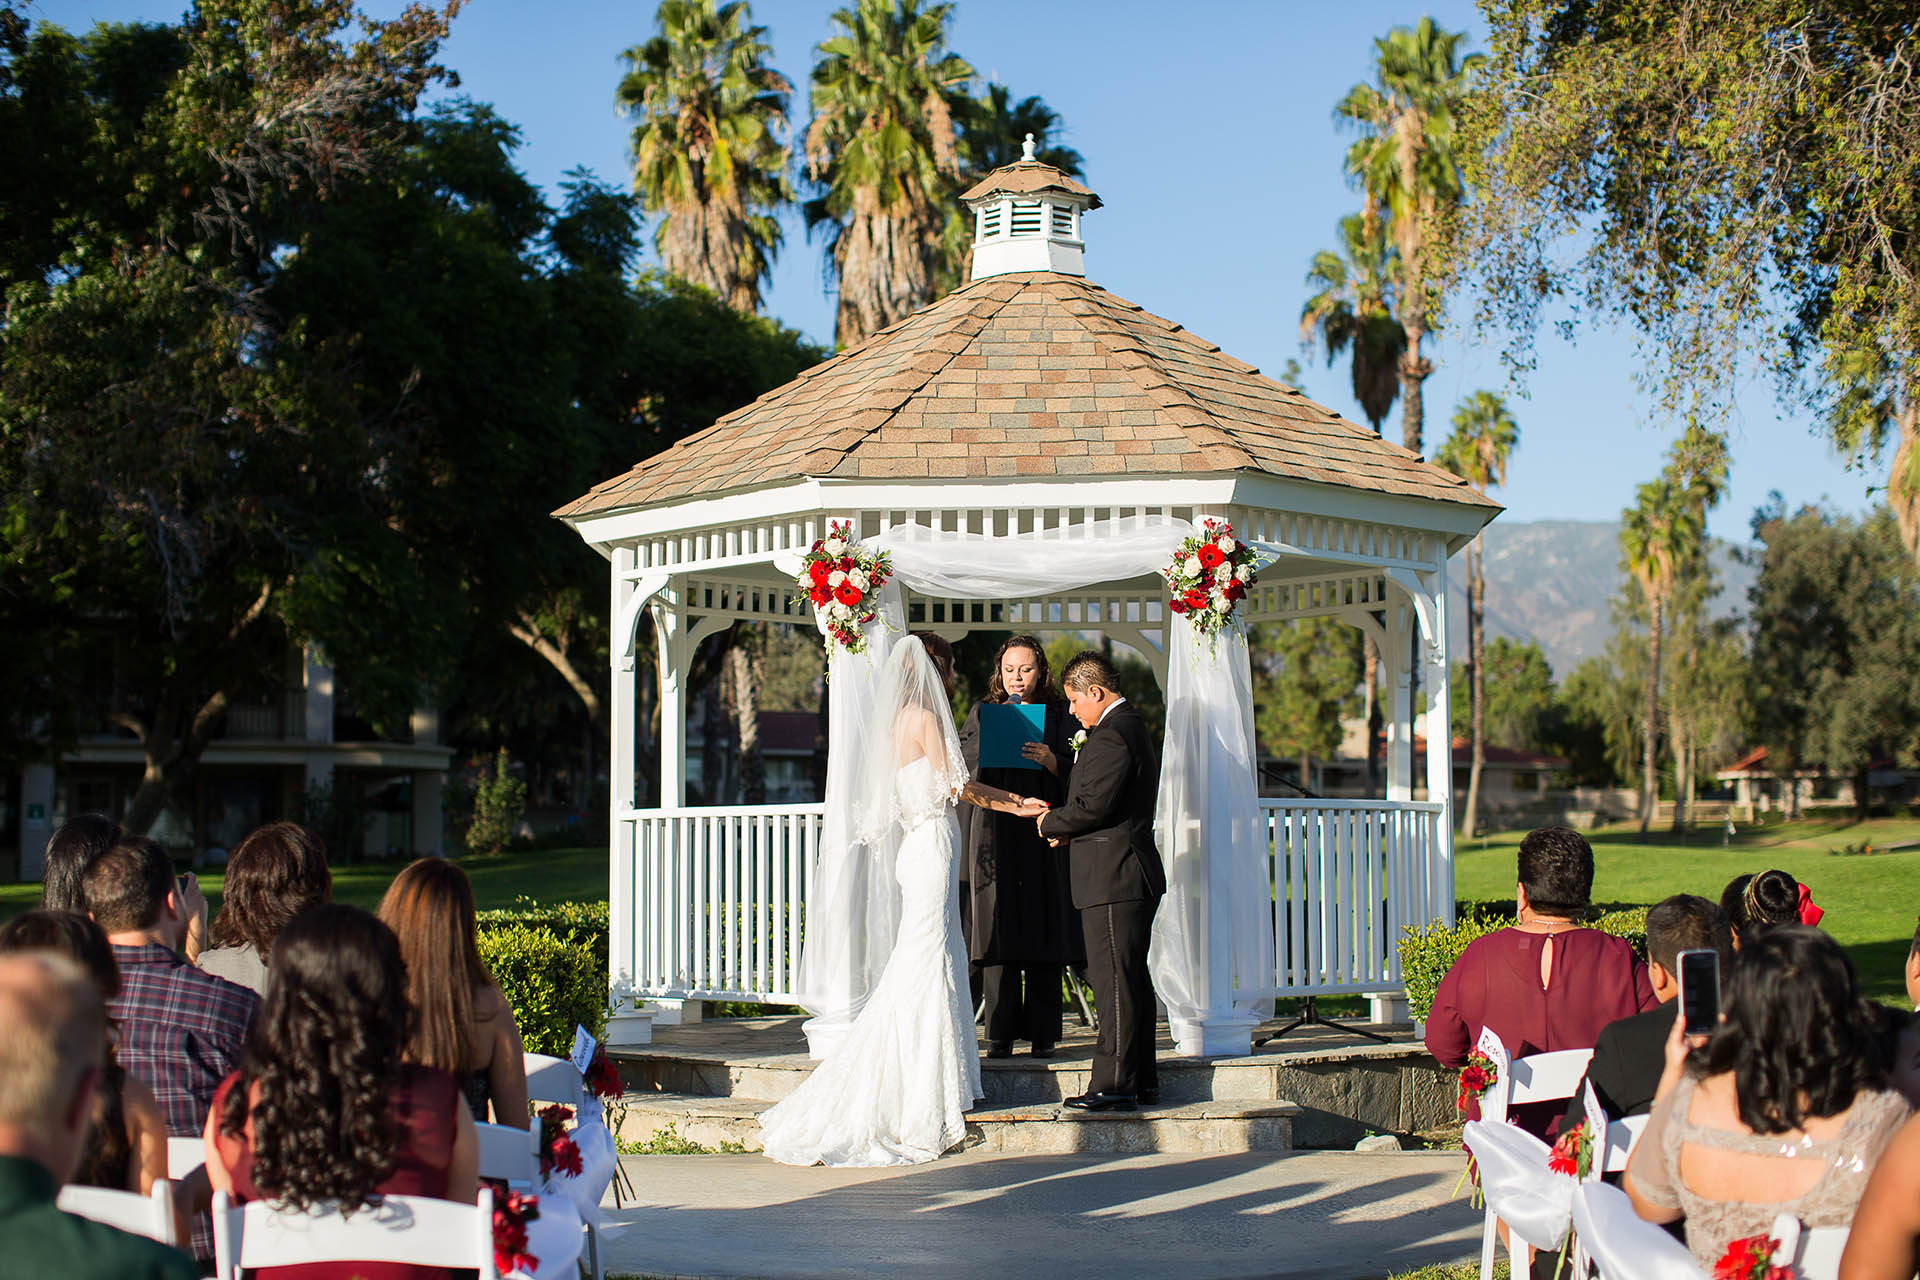 Traditional gazebo ceremony site